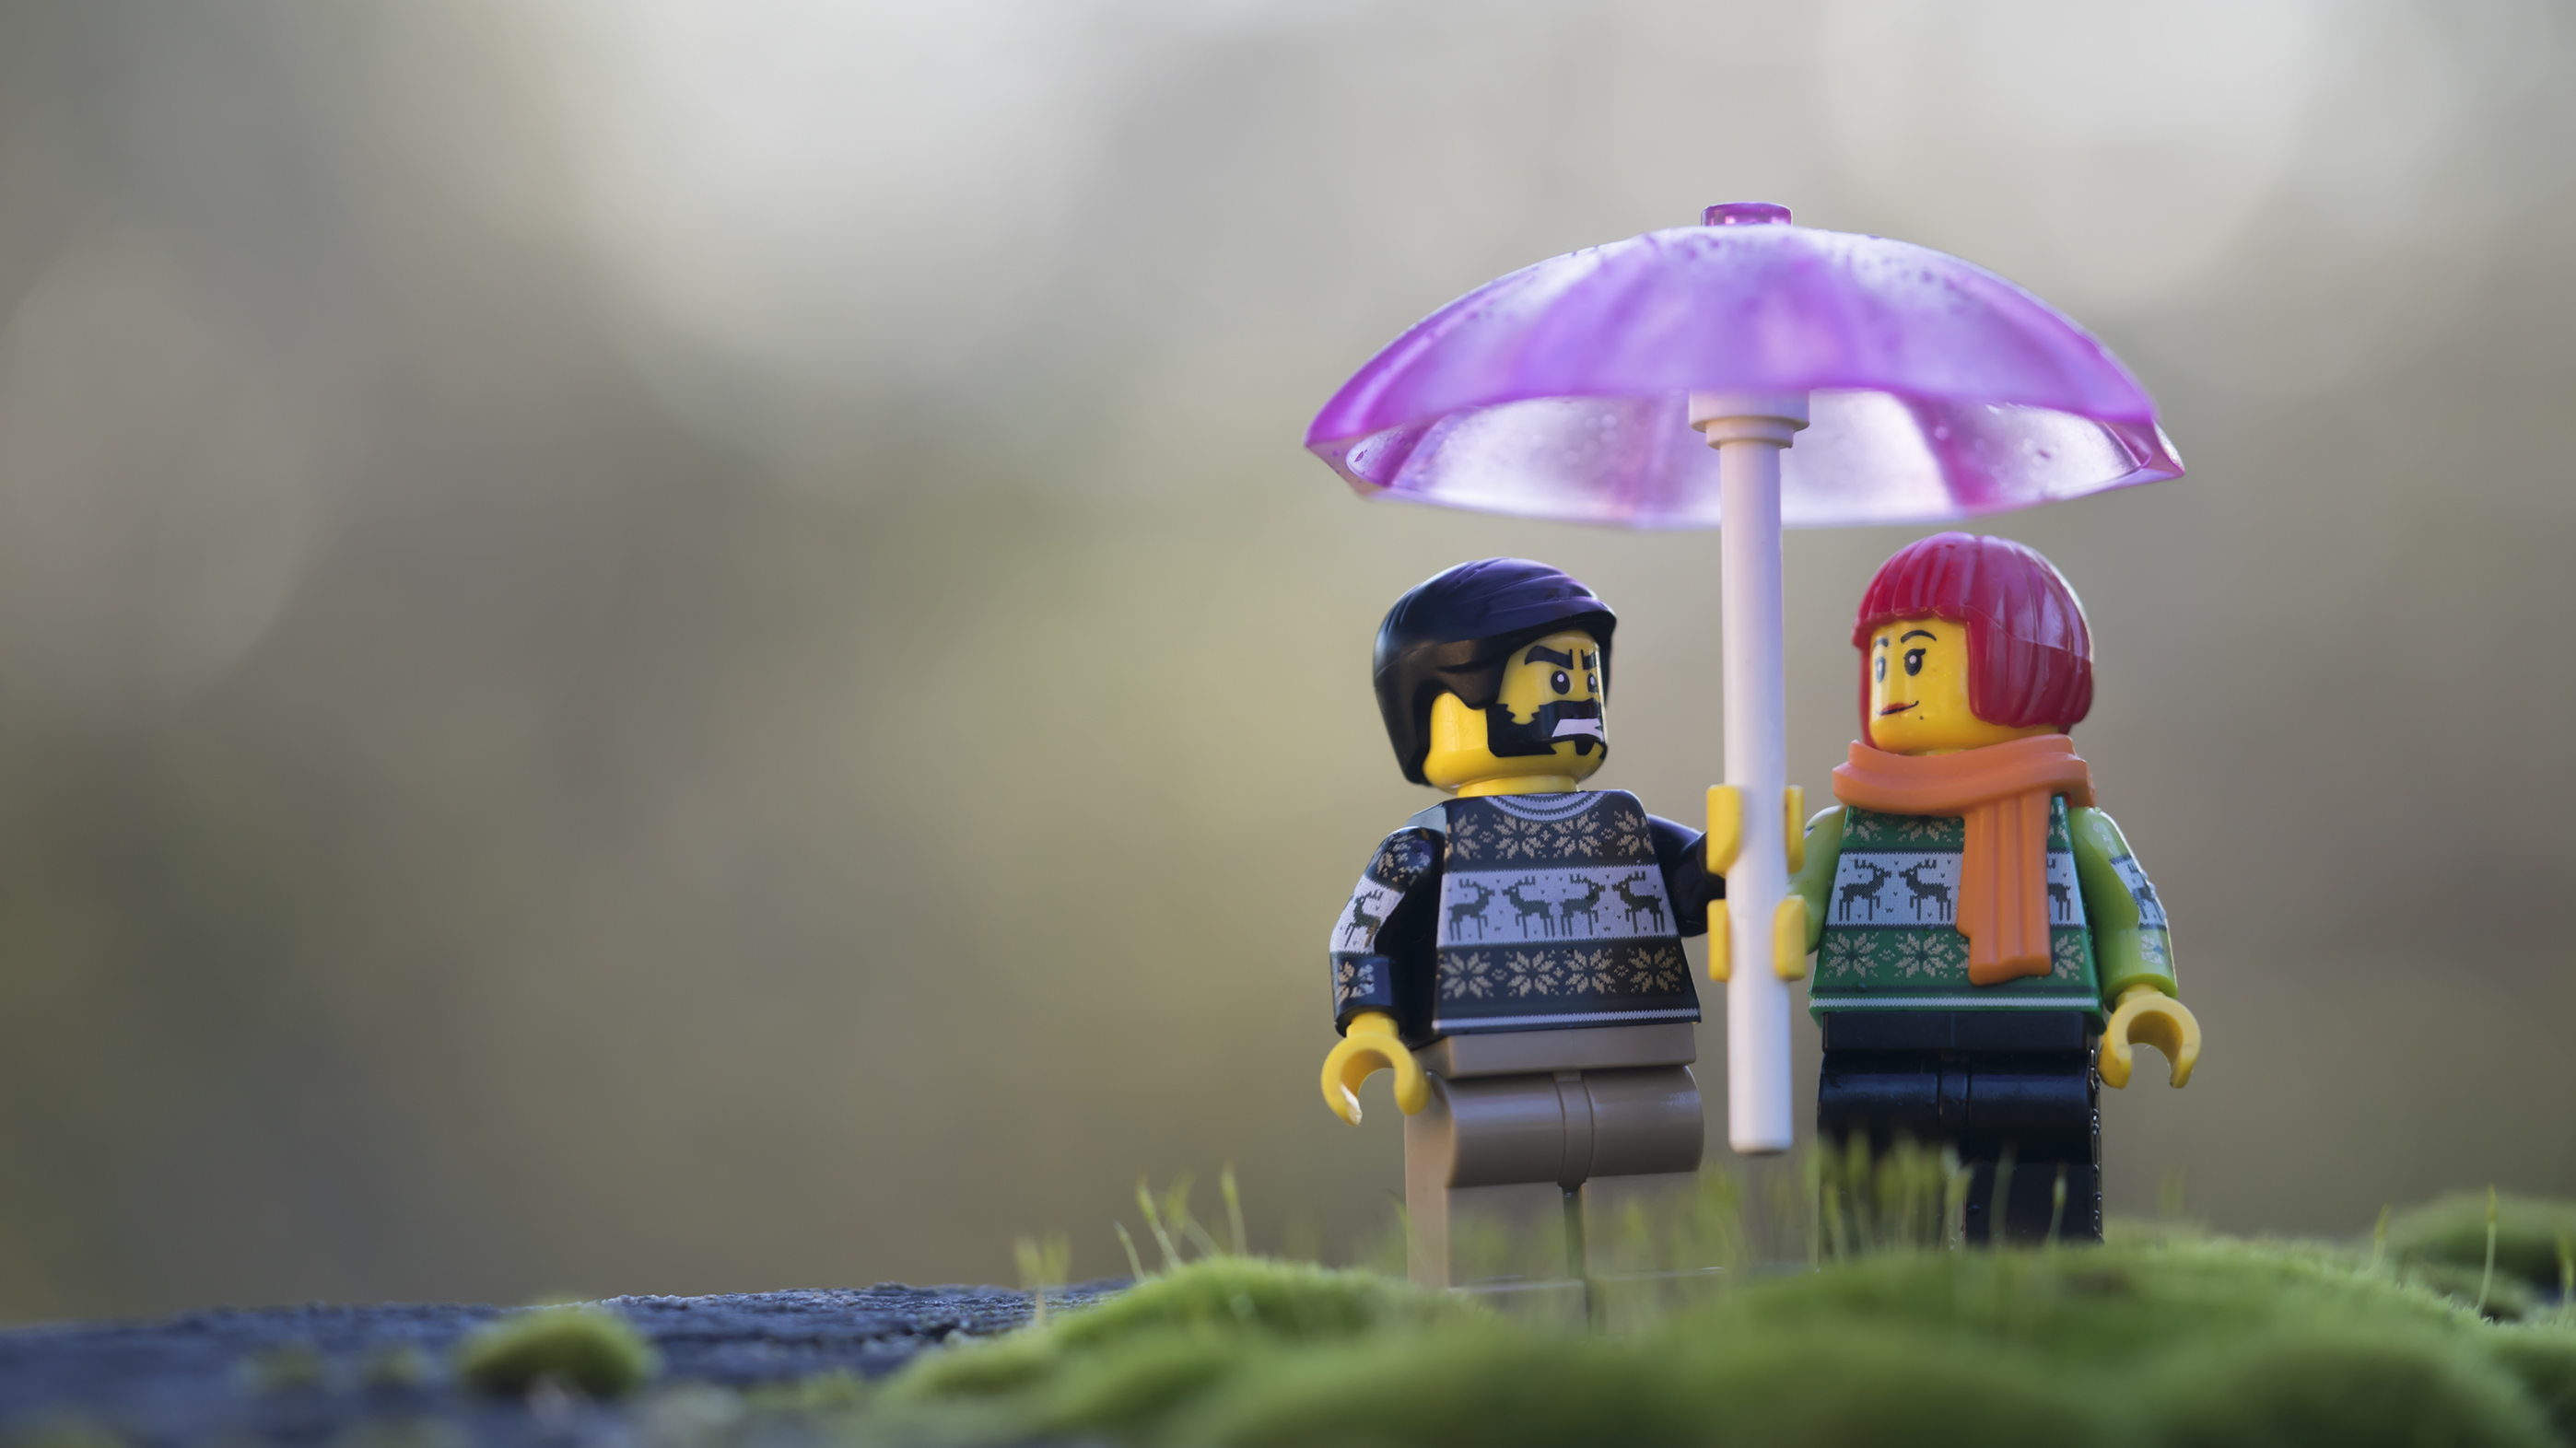 Two LEGO minifigures stand under a pink umbrella in their Christmas sweaters. Photo by Shelly Corbett